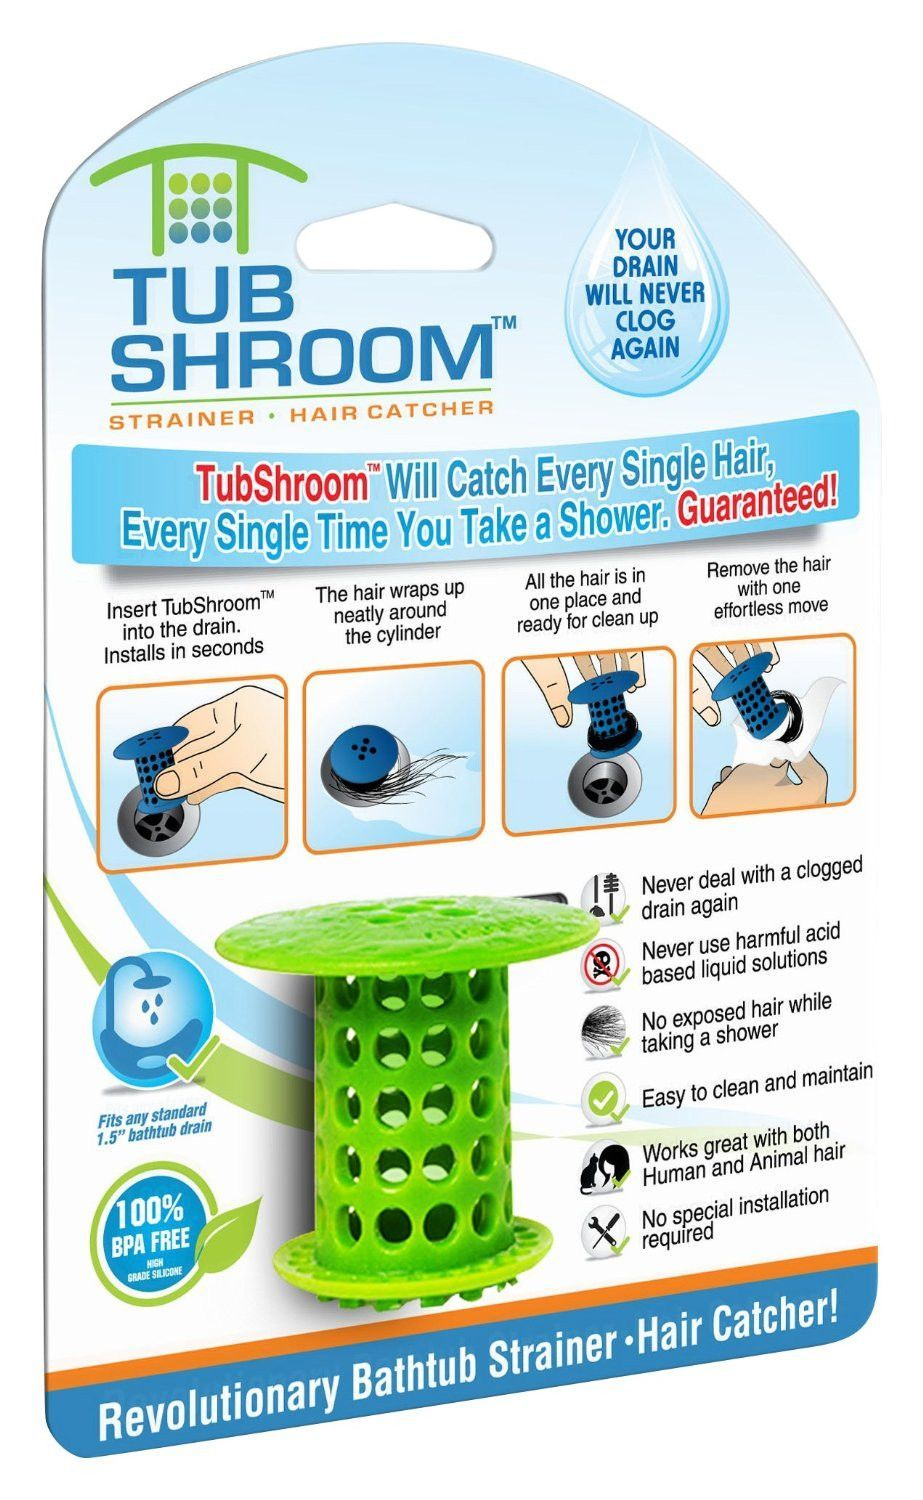 Green) The Hair Catcher That Prevents Clogged Tub Drains